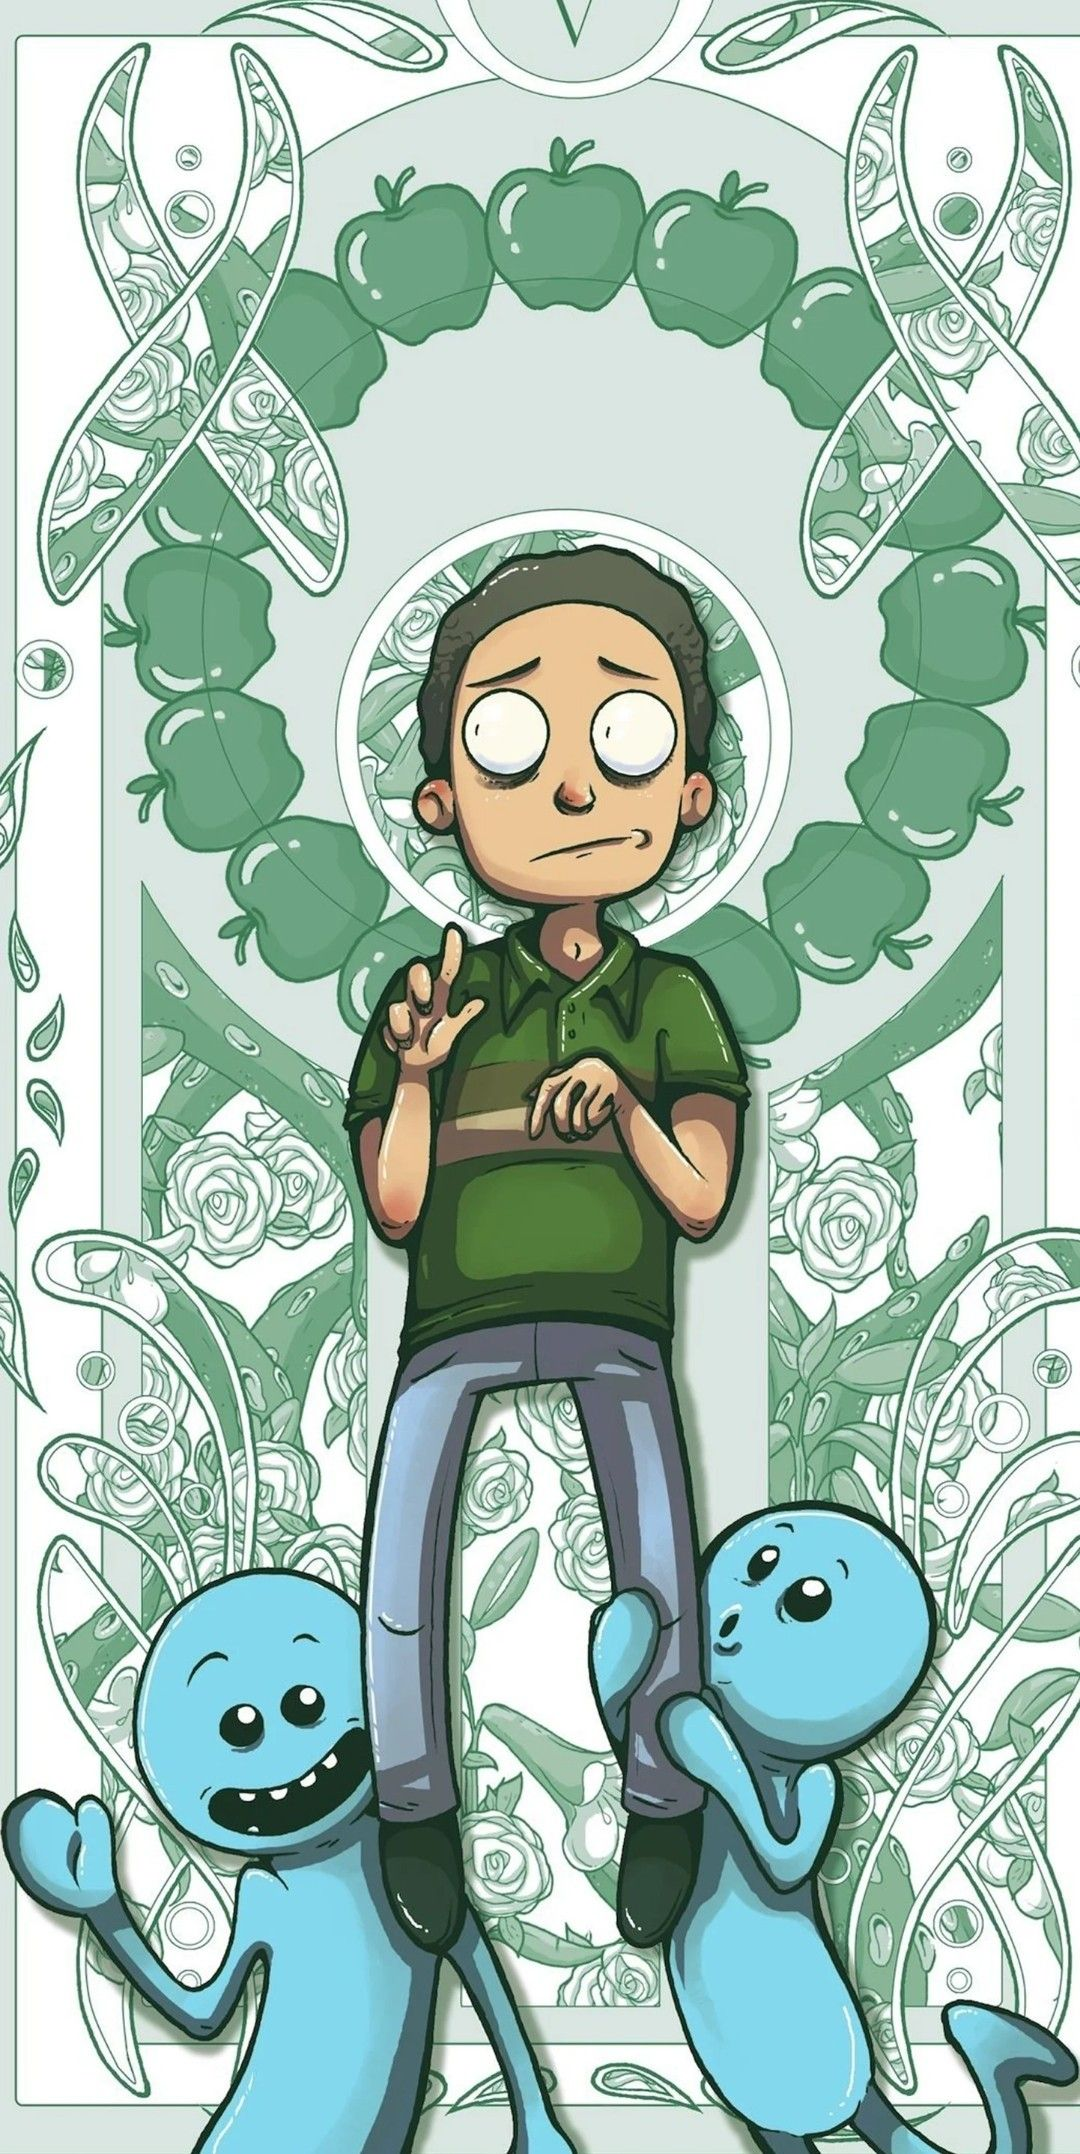 Pin On Rick Morty Wallpapers